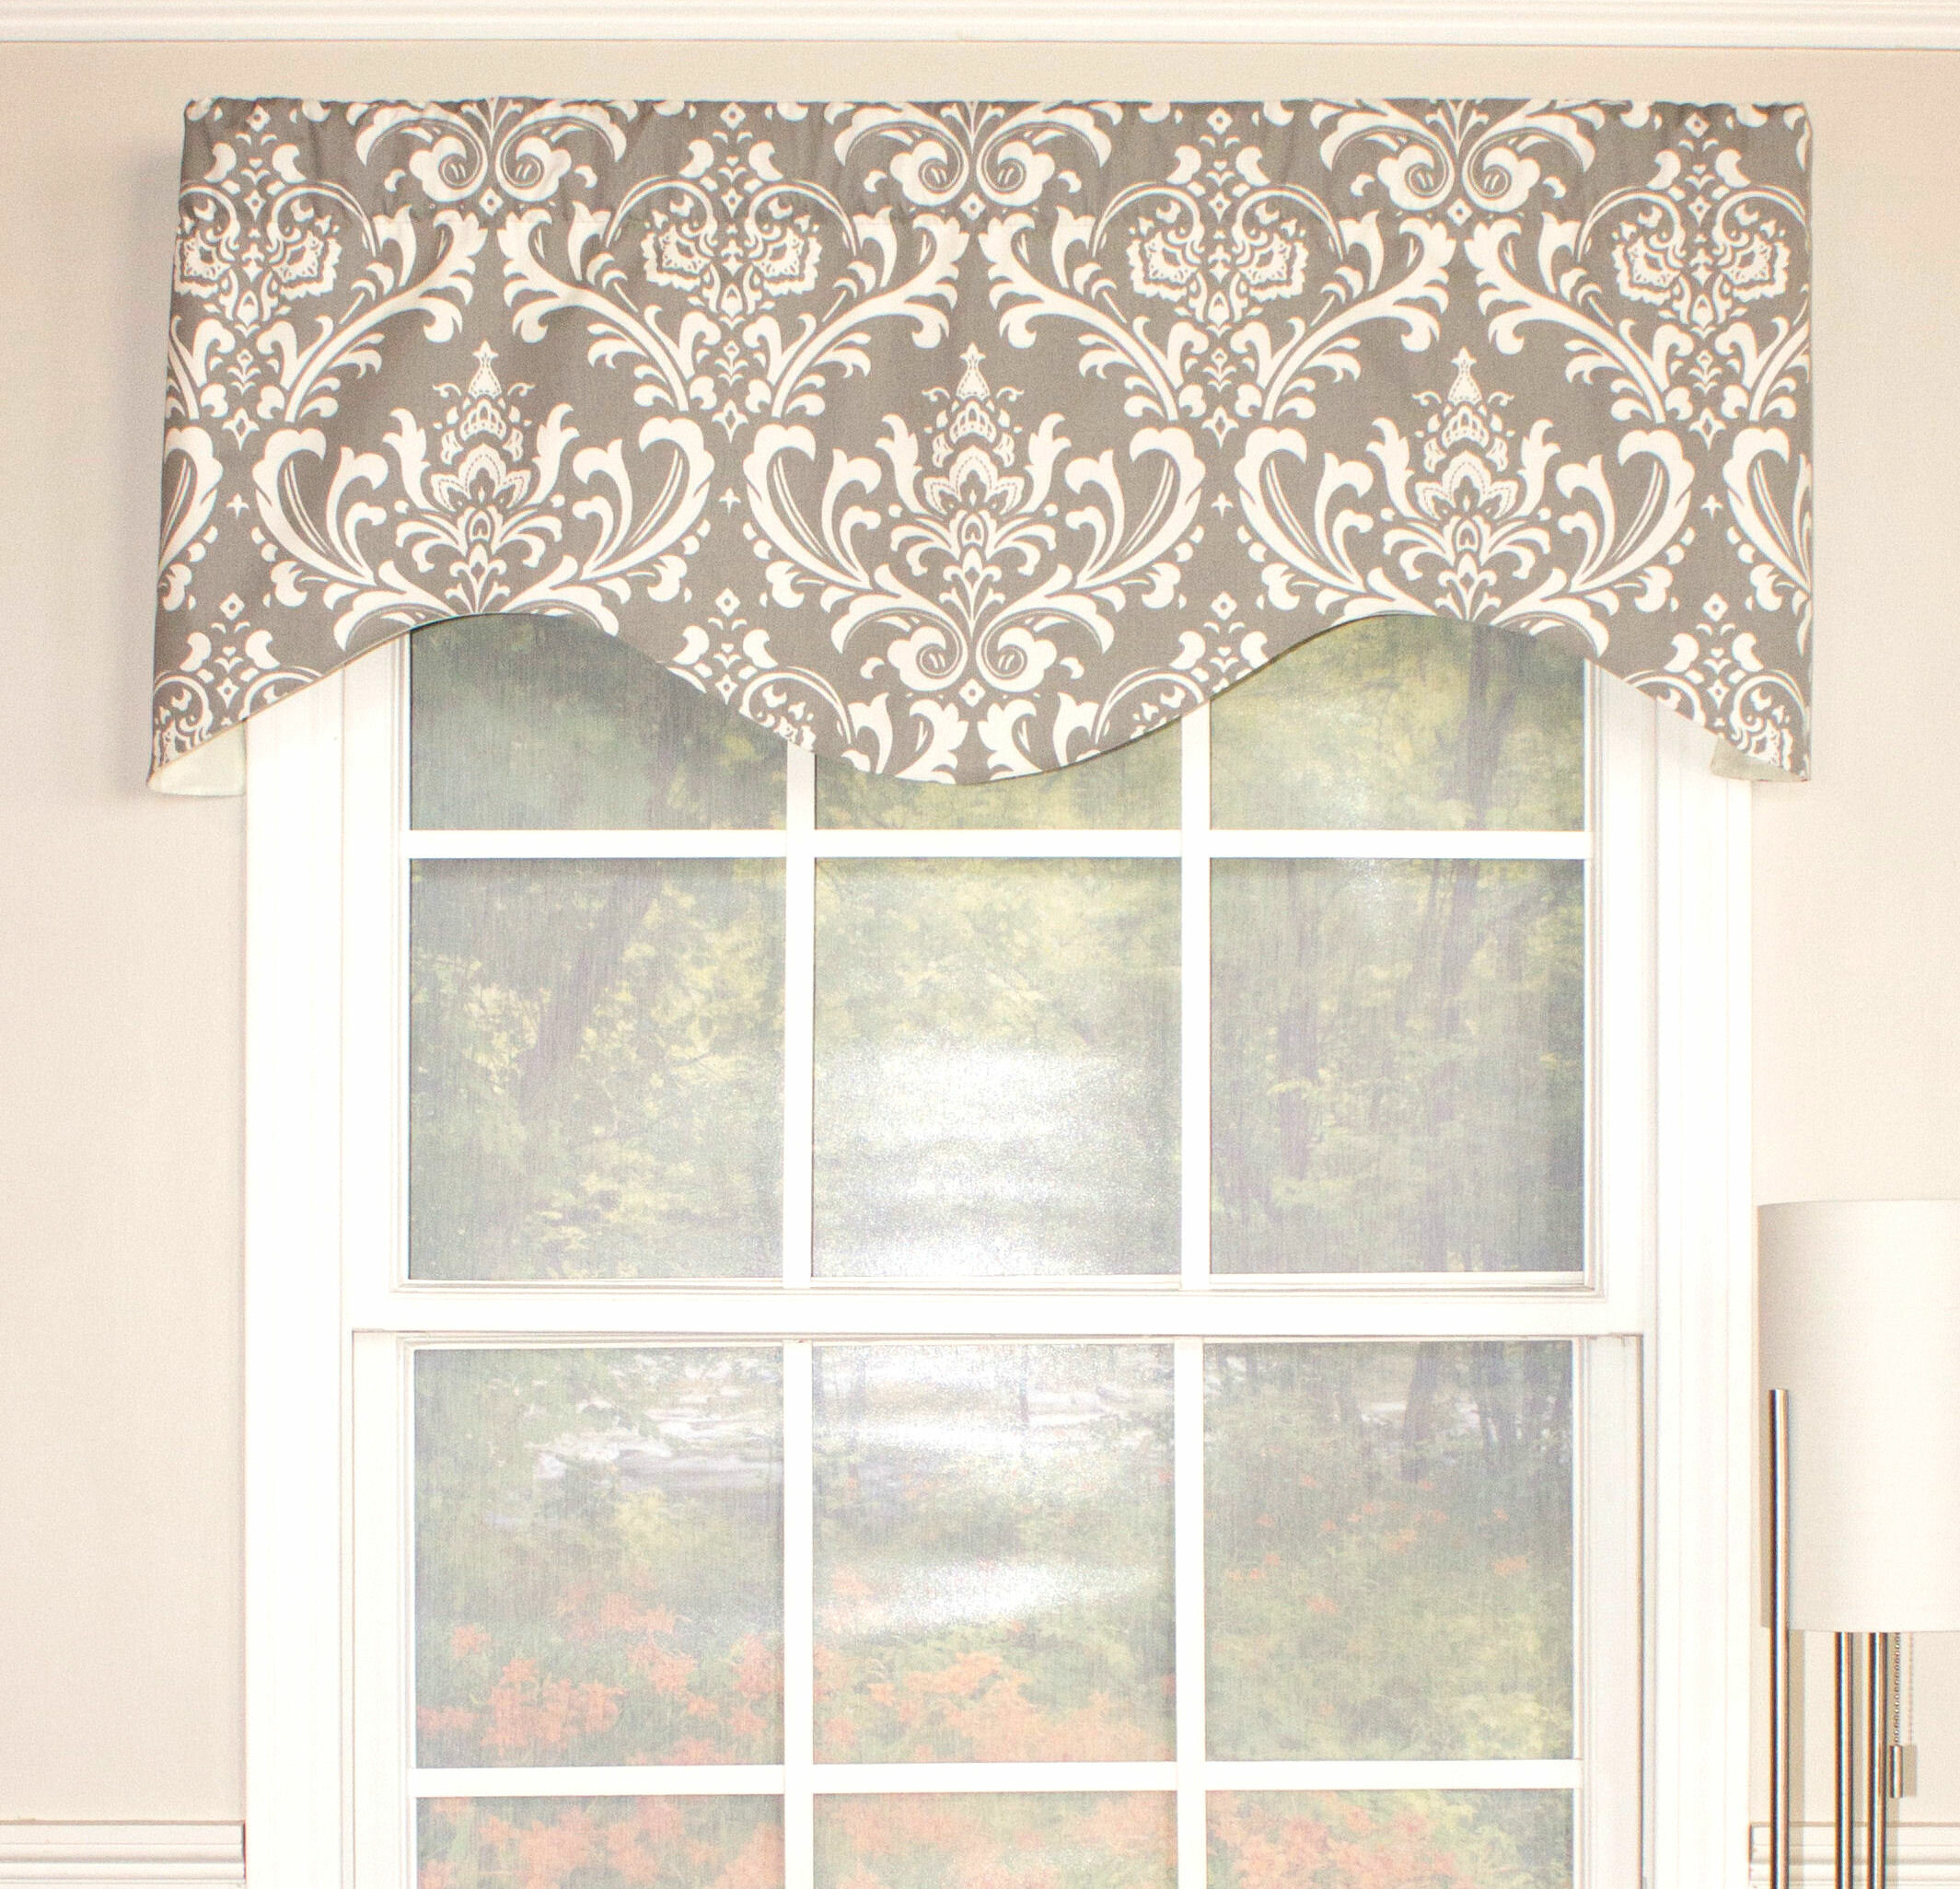 for windows of room can garden window a austrian feel valances images valance look x odznbbz parchment change the iii